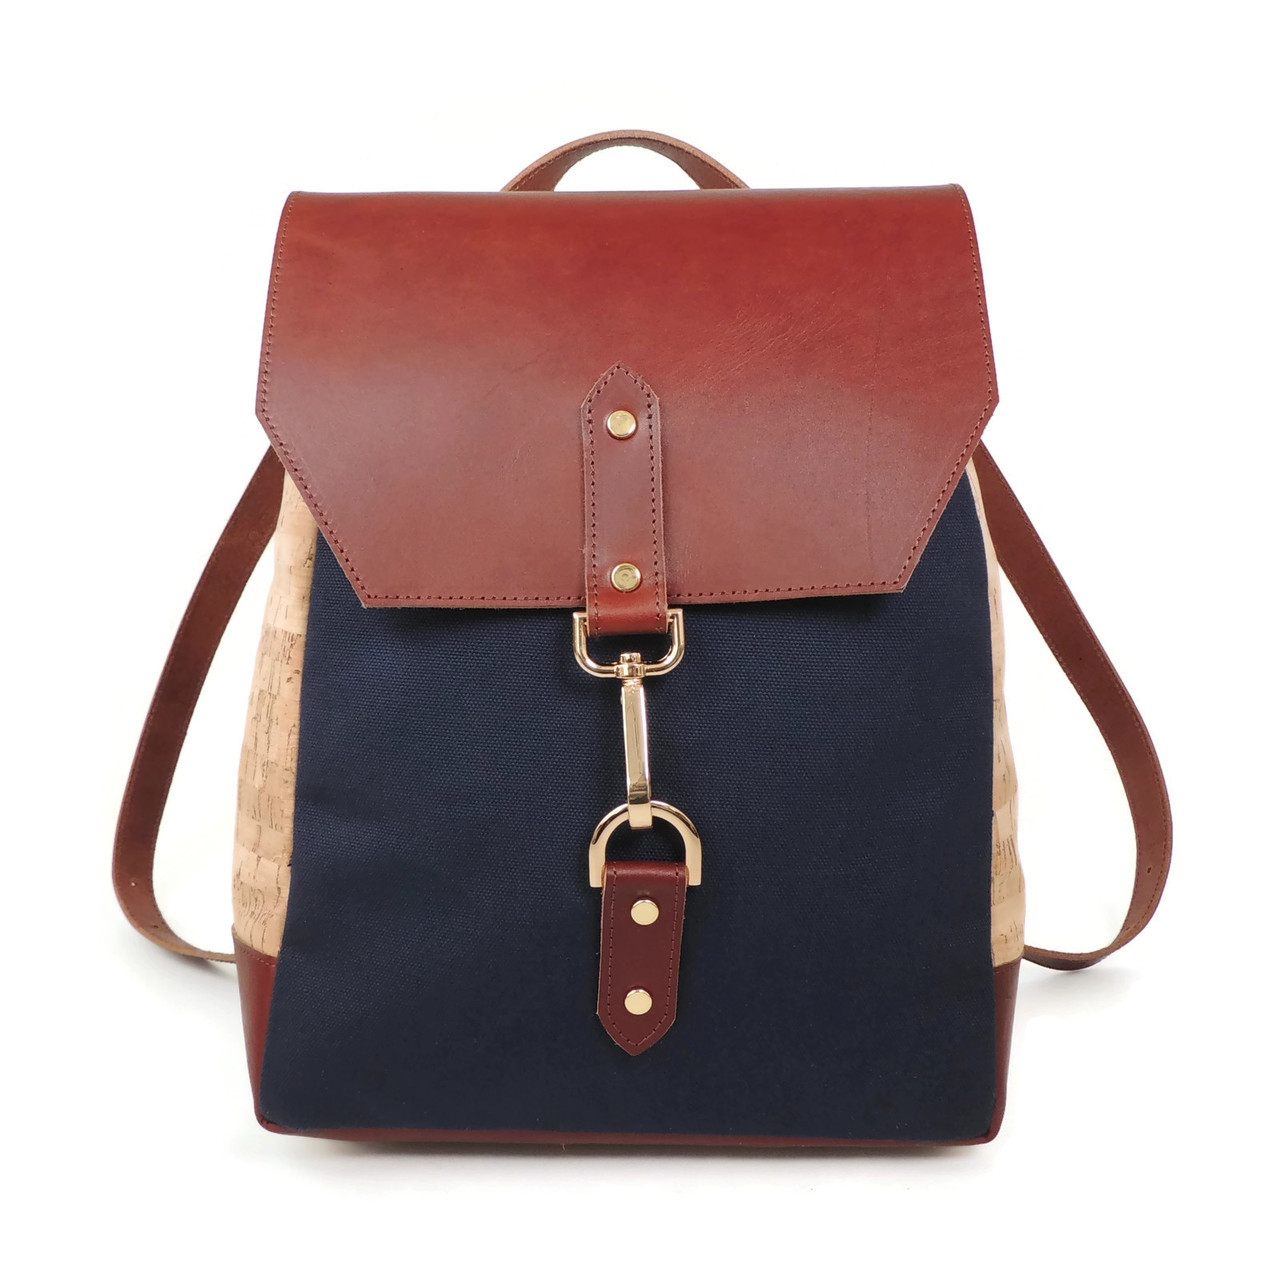 """<h2><a href=""""http://www.spicerbags.com/cork-leather-backpack-in-cork-dash/"""">Spicer Cork and Leather Backpack, $204.25</a></h2>"""